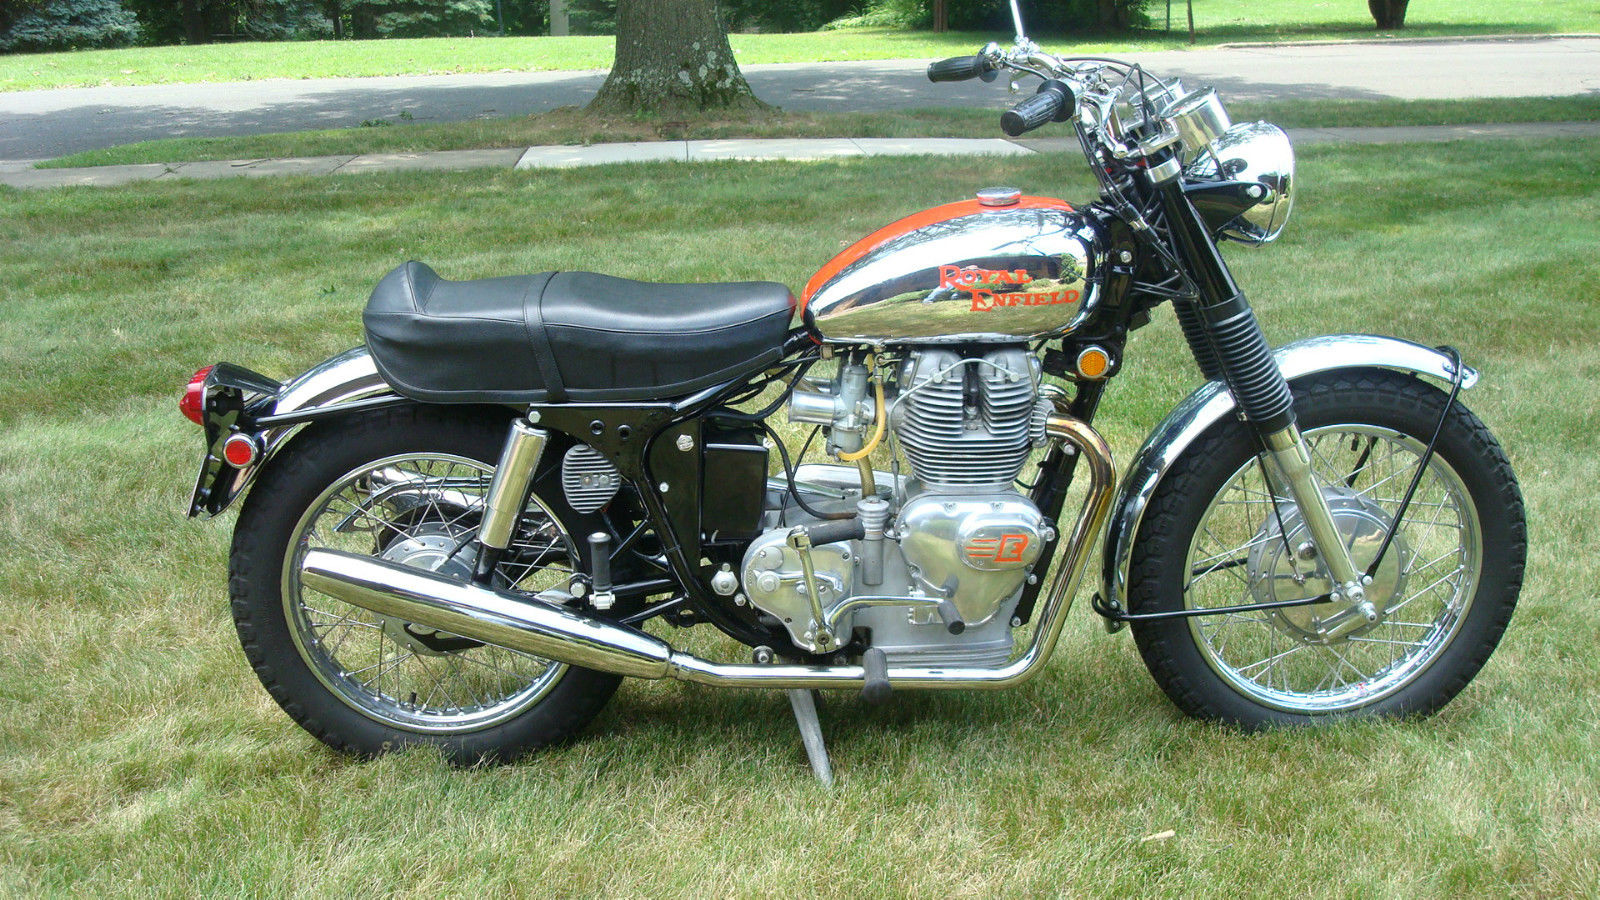 1969 royal enfield interceptor bike urious. Black Bedroom Furniture Sets. Home Design Ideas